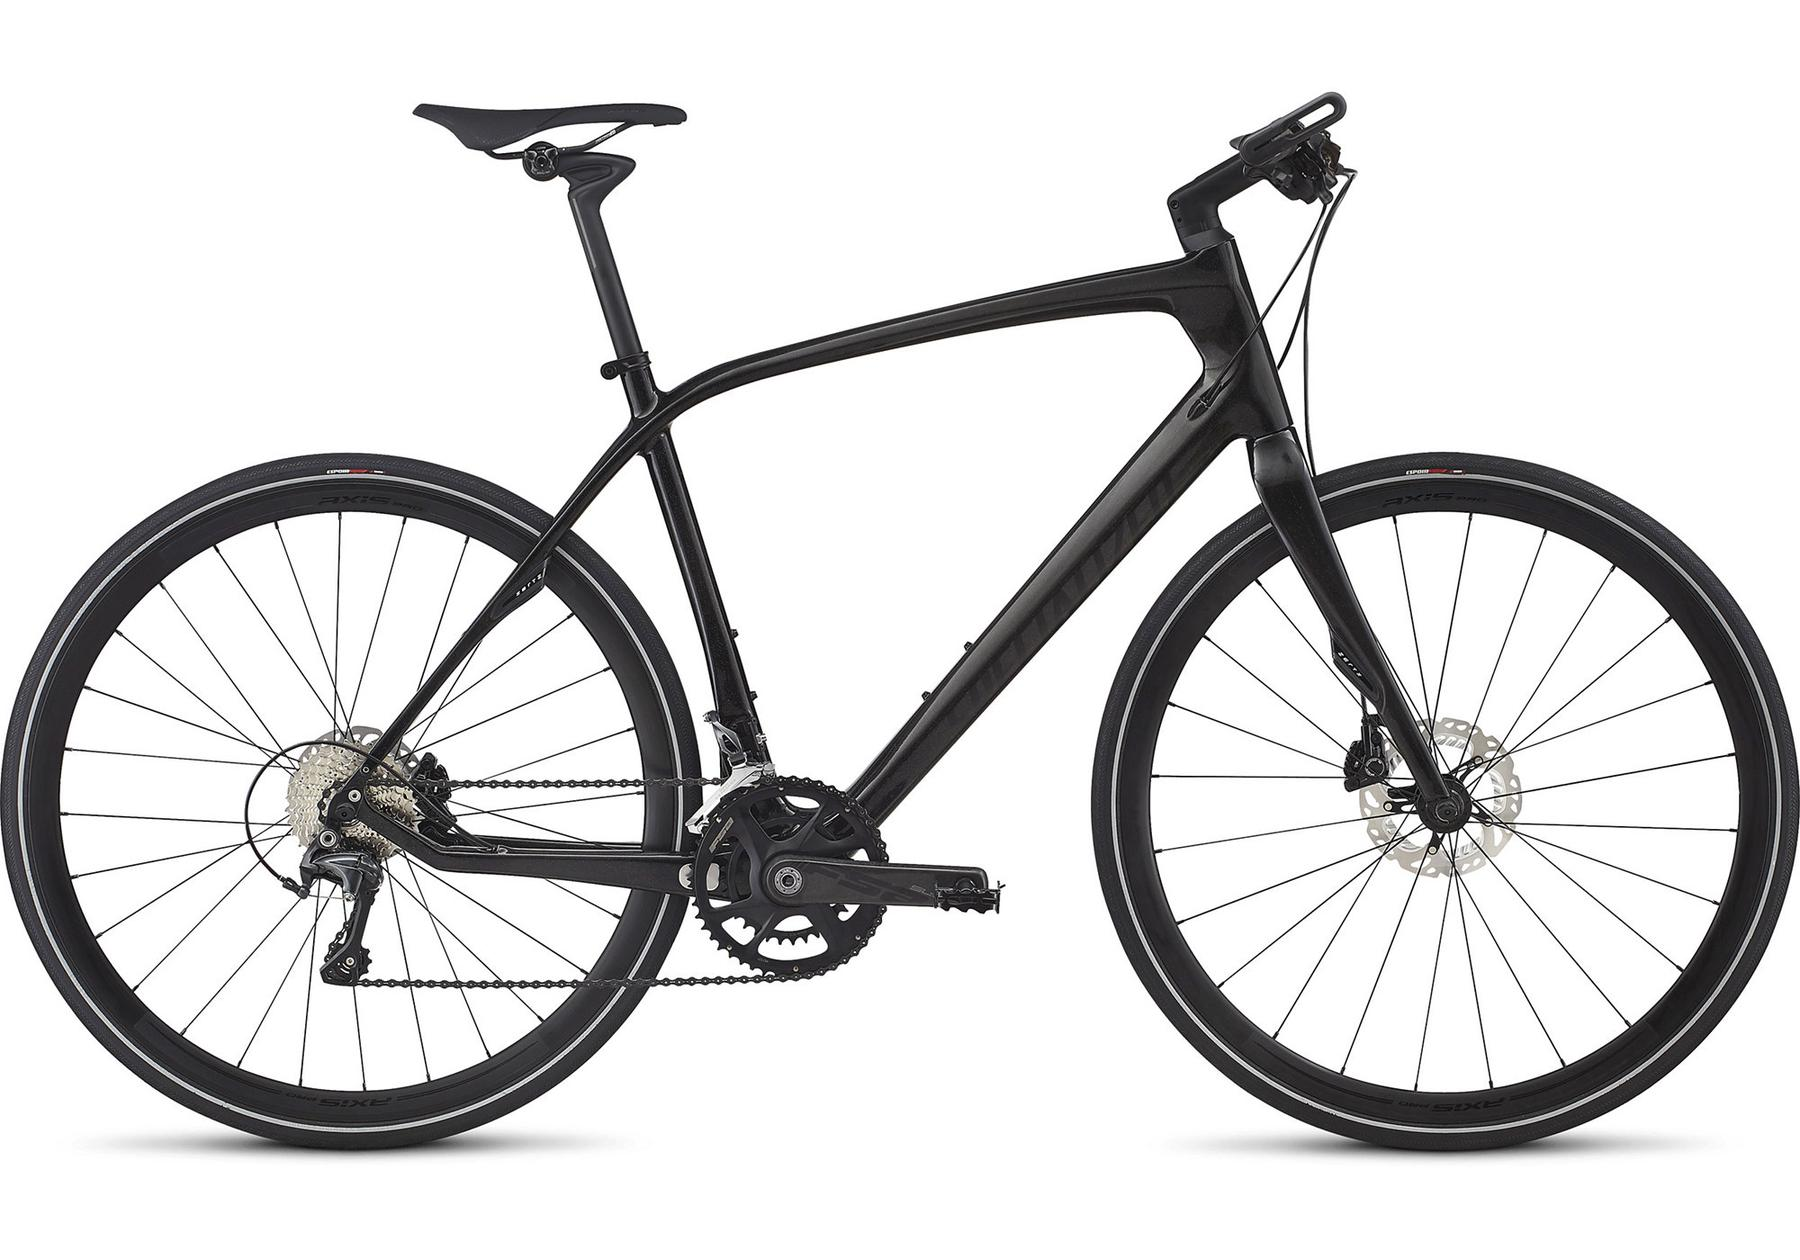 Specialized Sirrus Pro Carbon City Bikes / Fitnessräder 2017